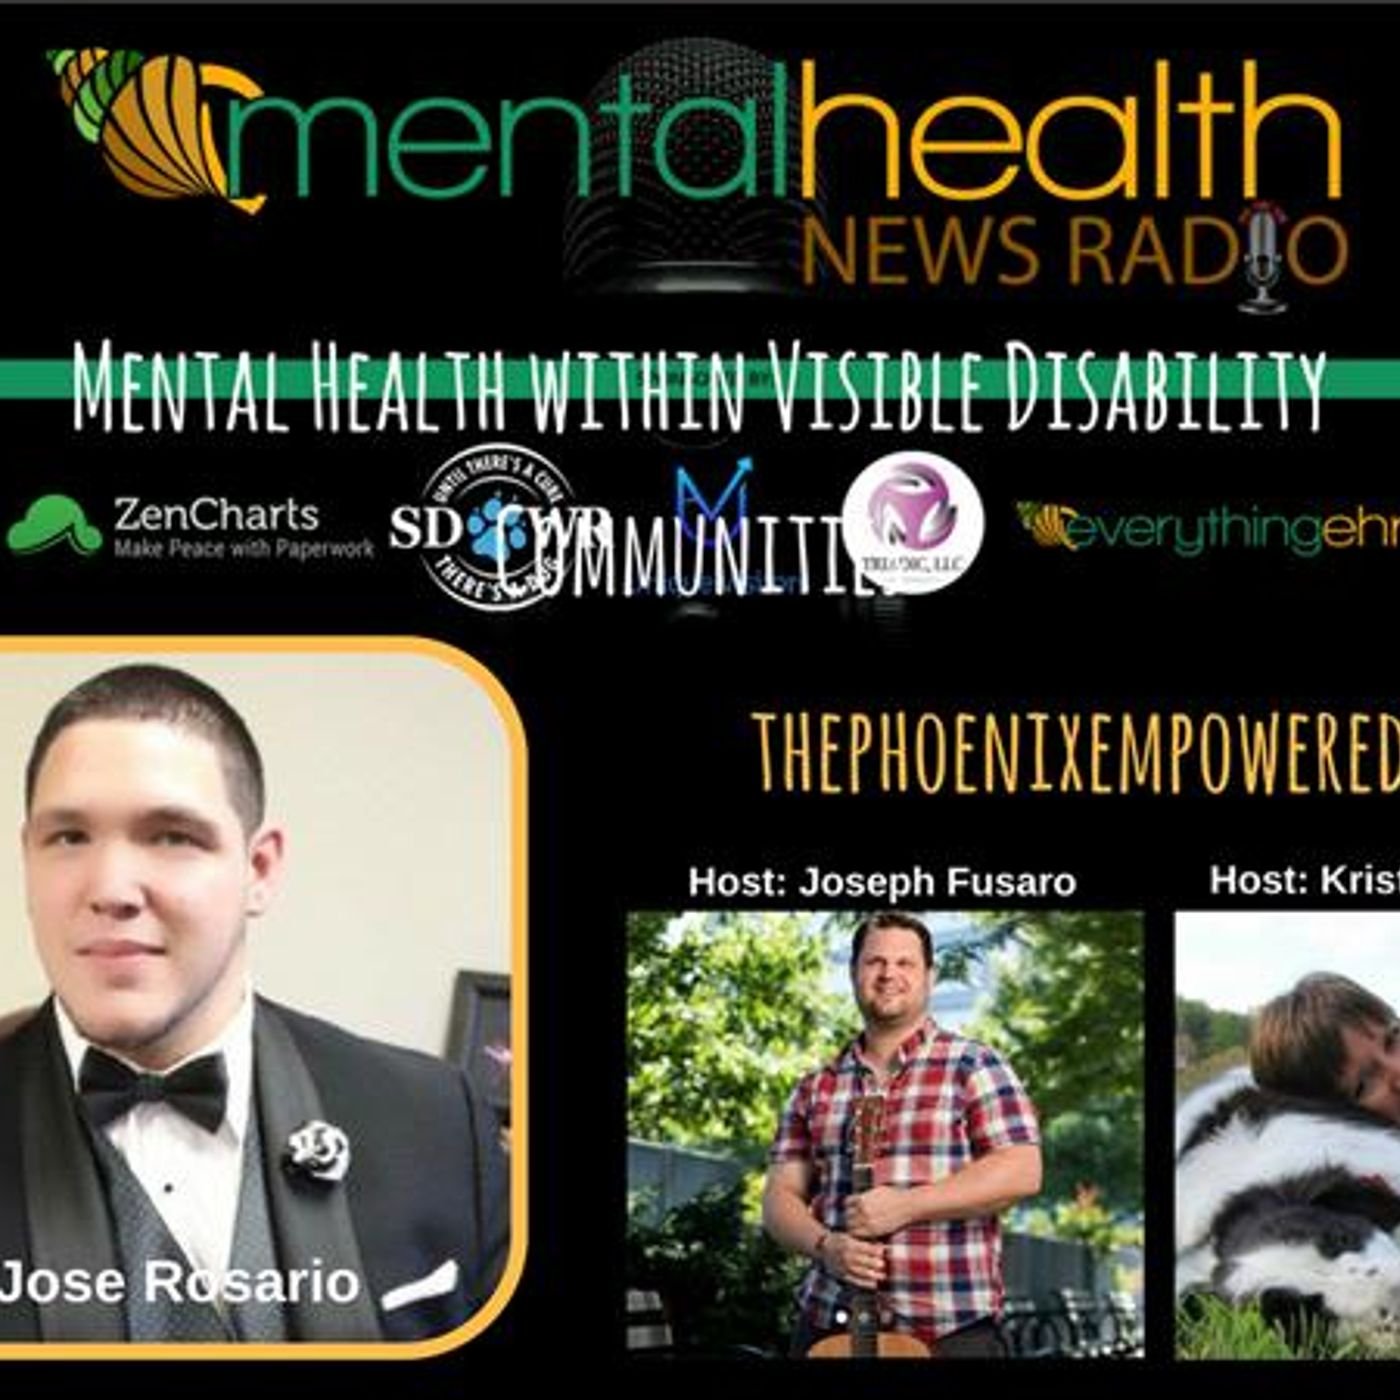 Mental Health News Radio - Mental Health within Visible Disability Communities: Advocate Jose Rosario